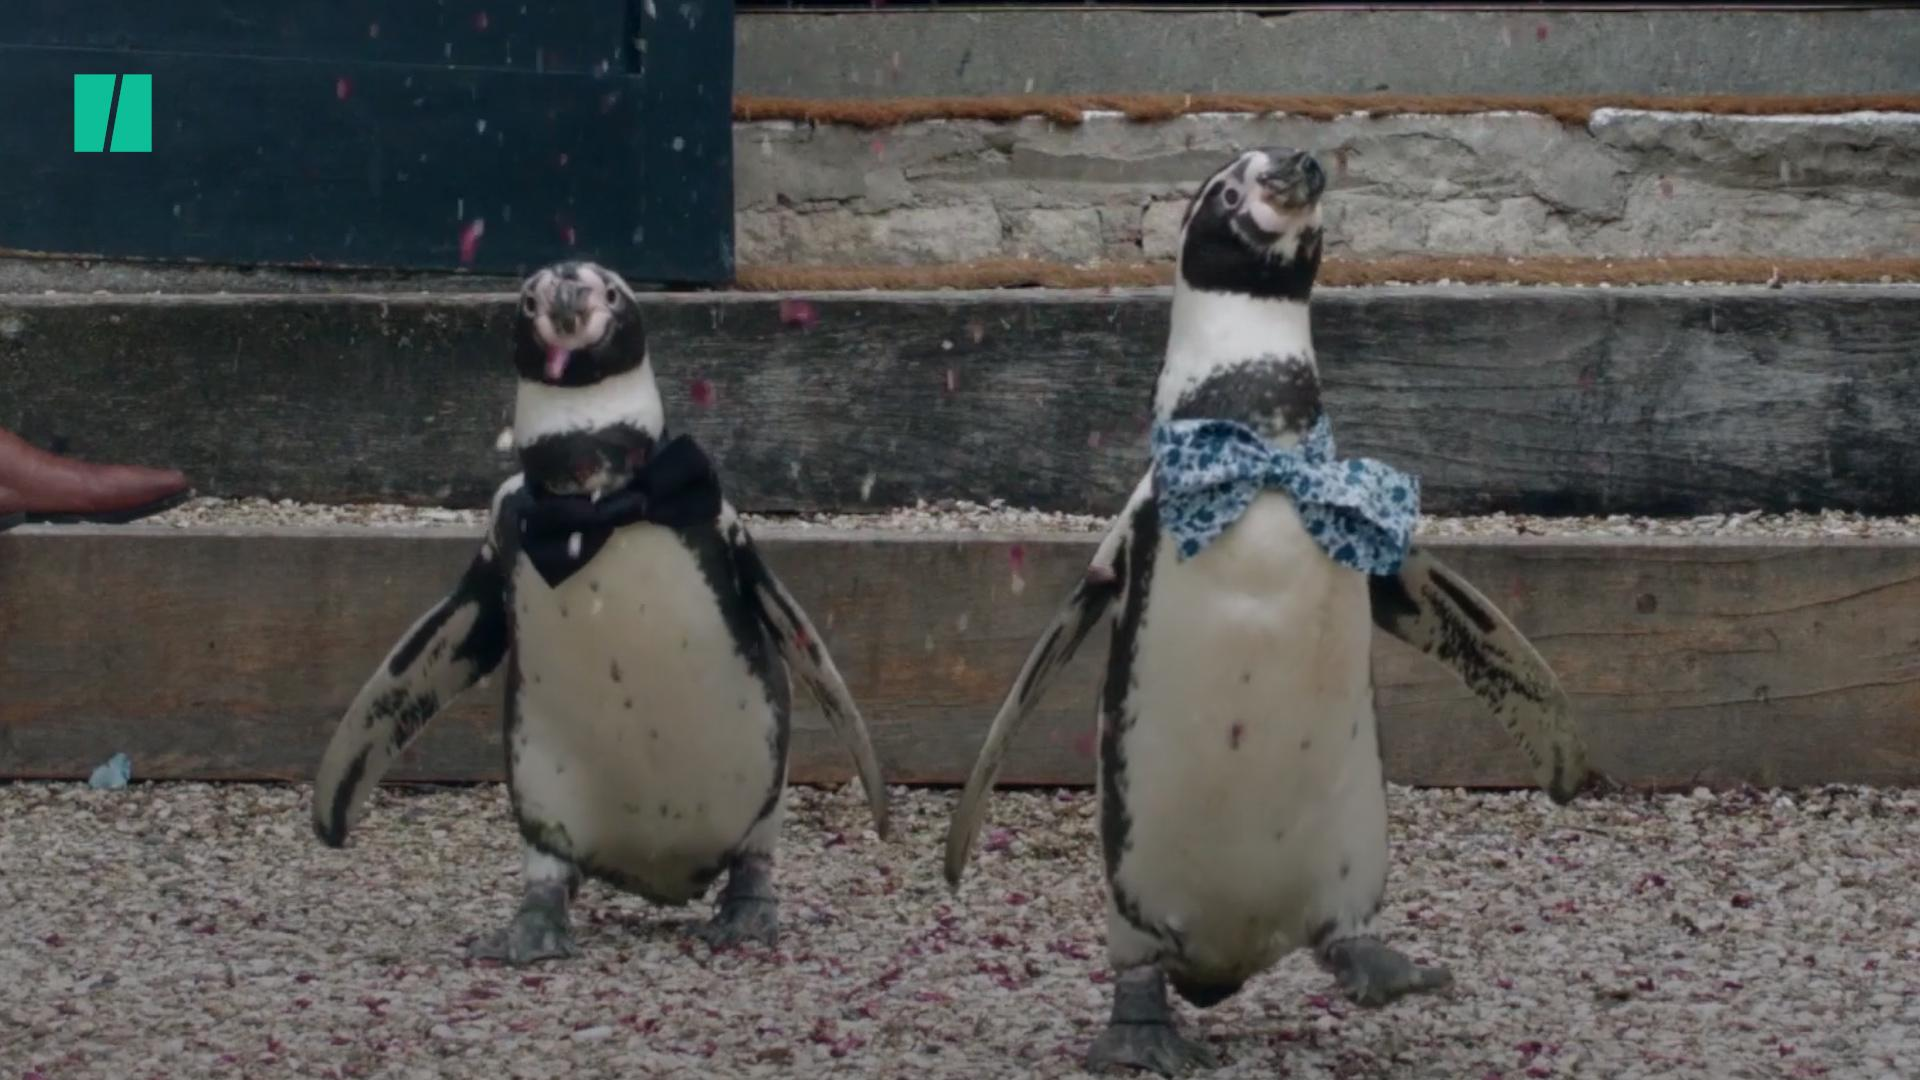 5 Cute Animals To End The Week: Penguins Wed And Cats Cuddle In Our Ode To Love